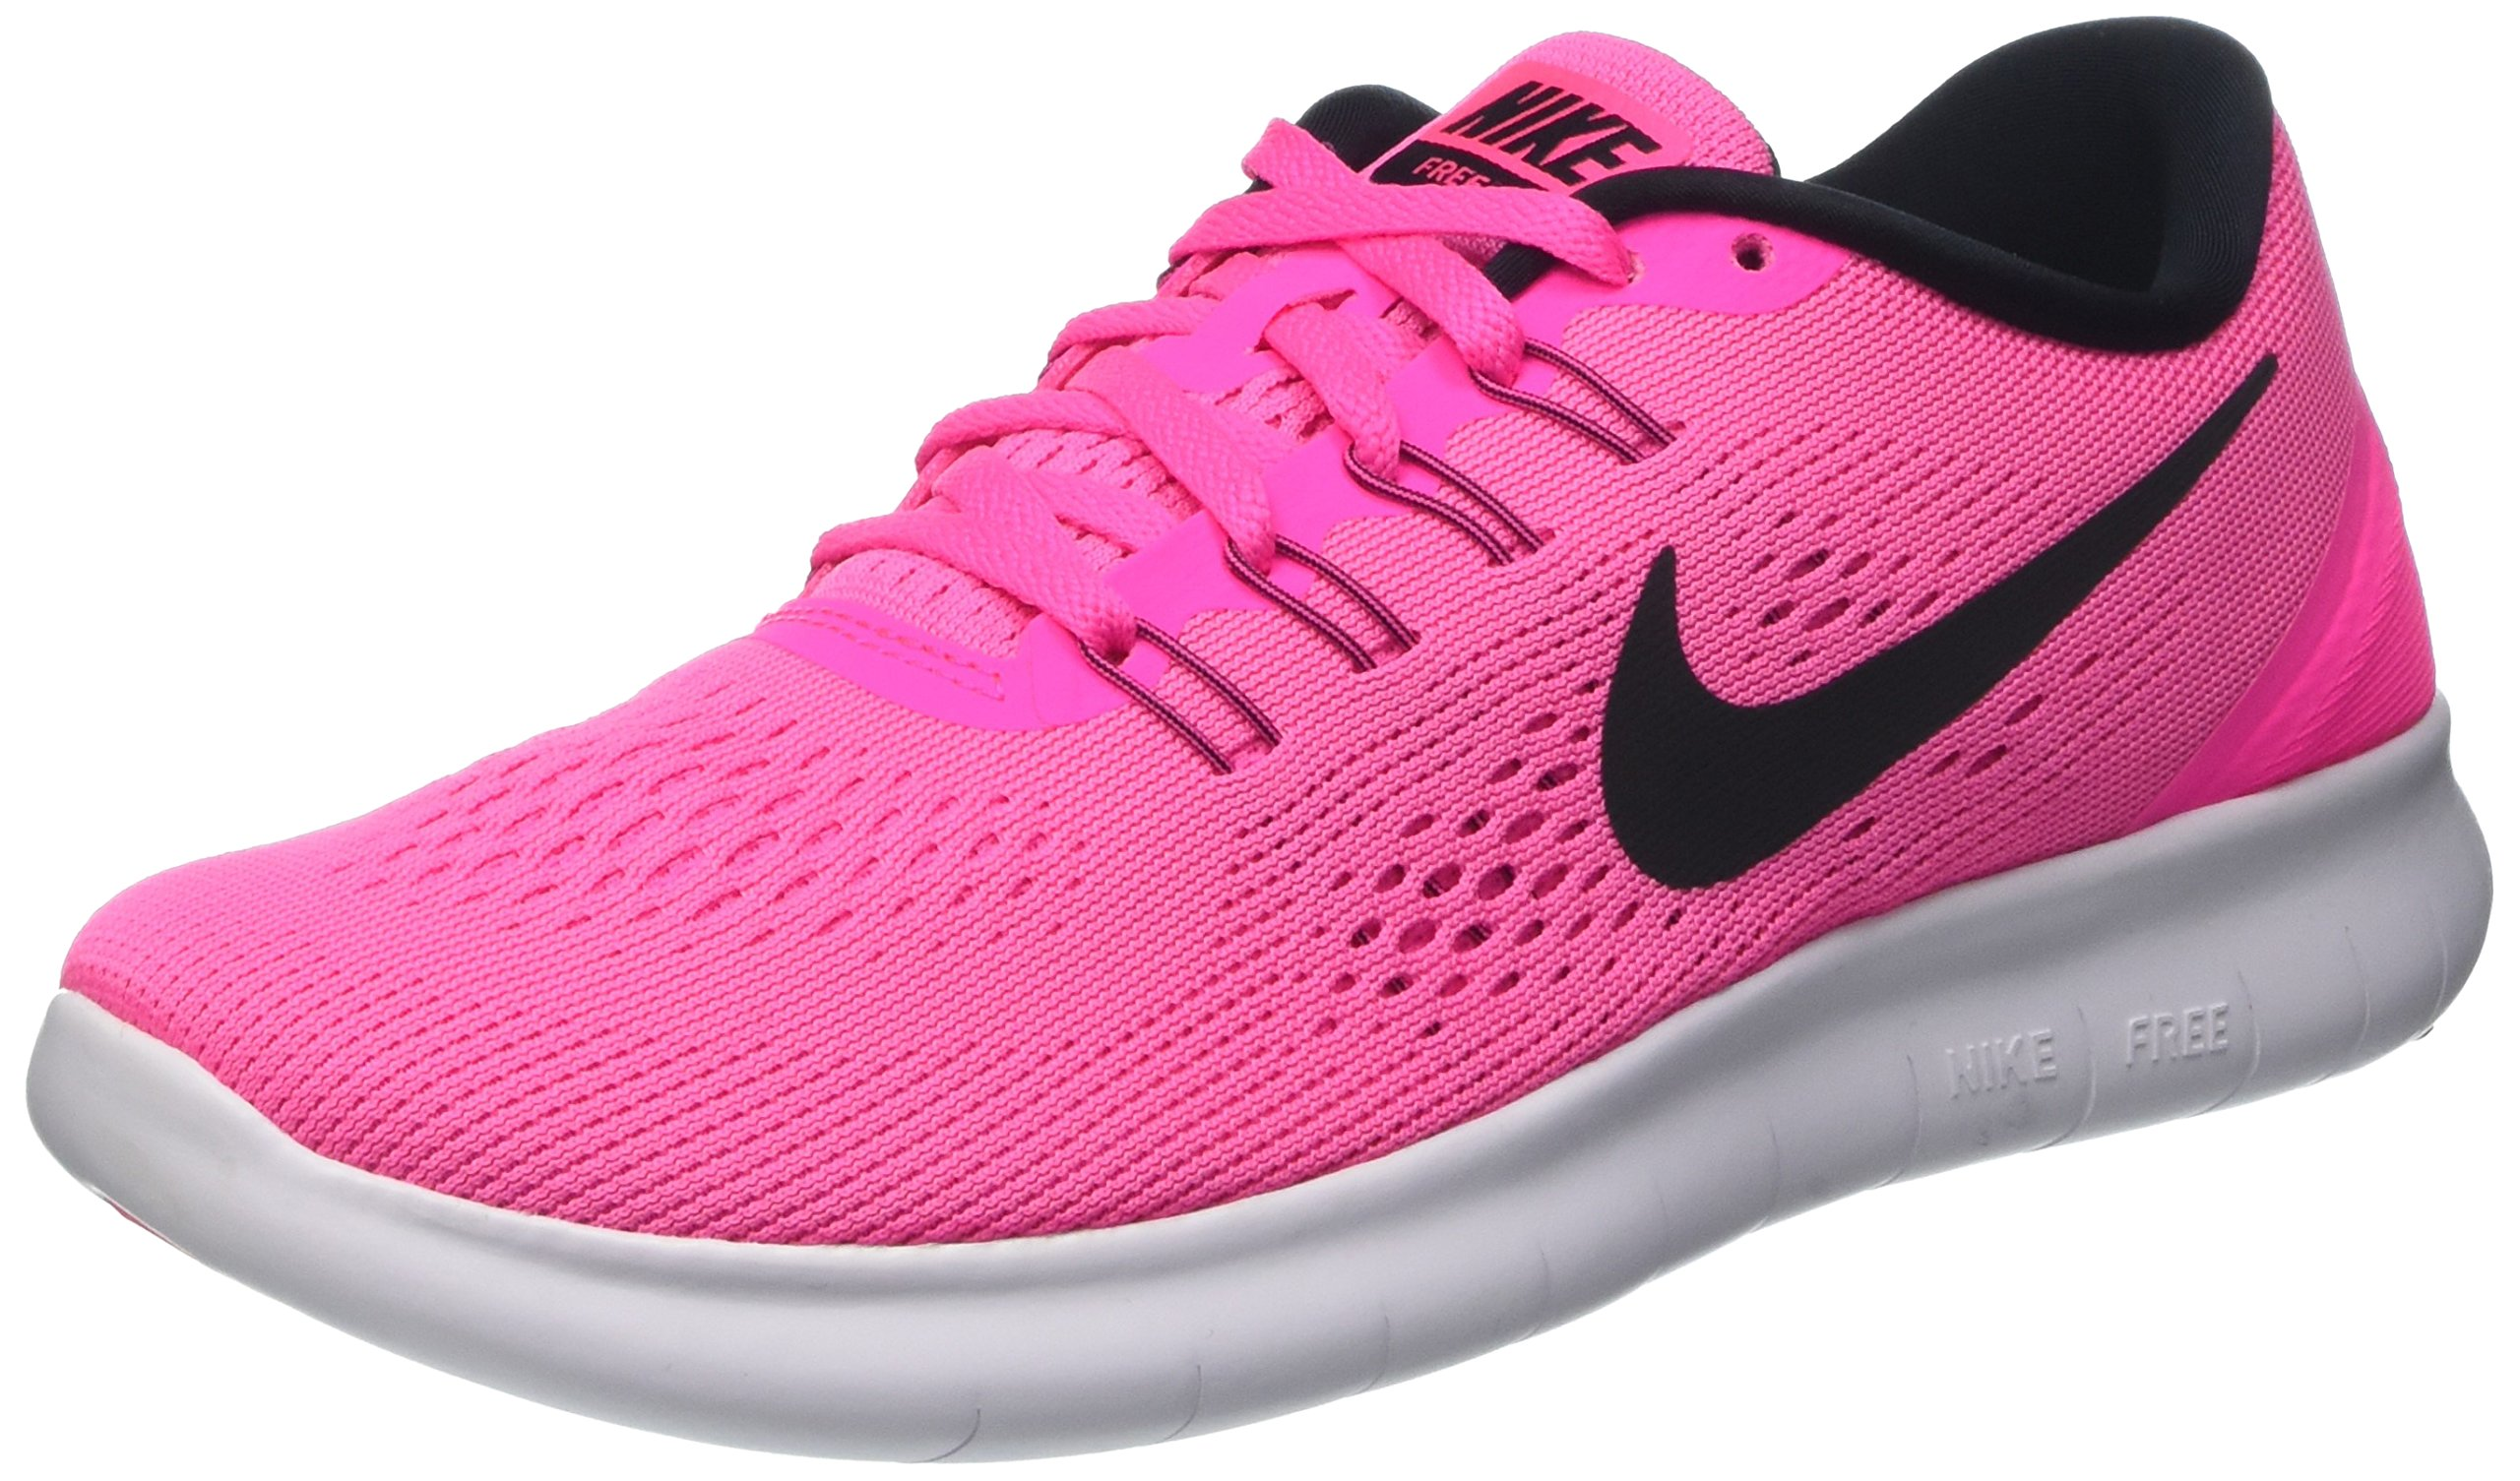 Nike Womens Free RN Running Shoes Pink Blast/Fire Pink/White/Black 5 B(M) US by Nike (Image #1)